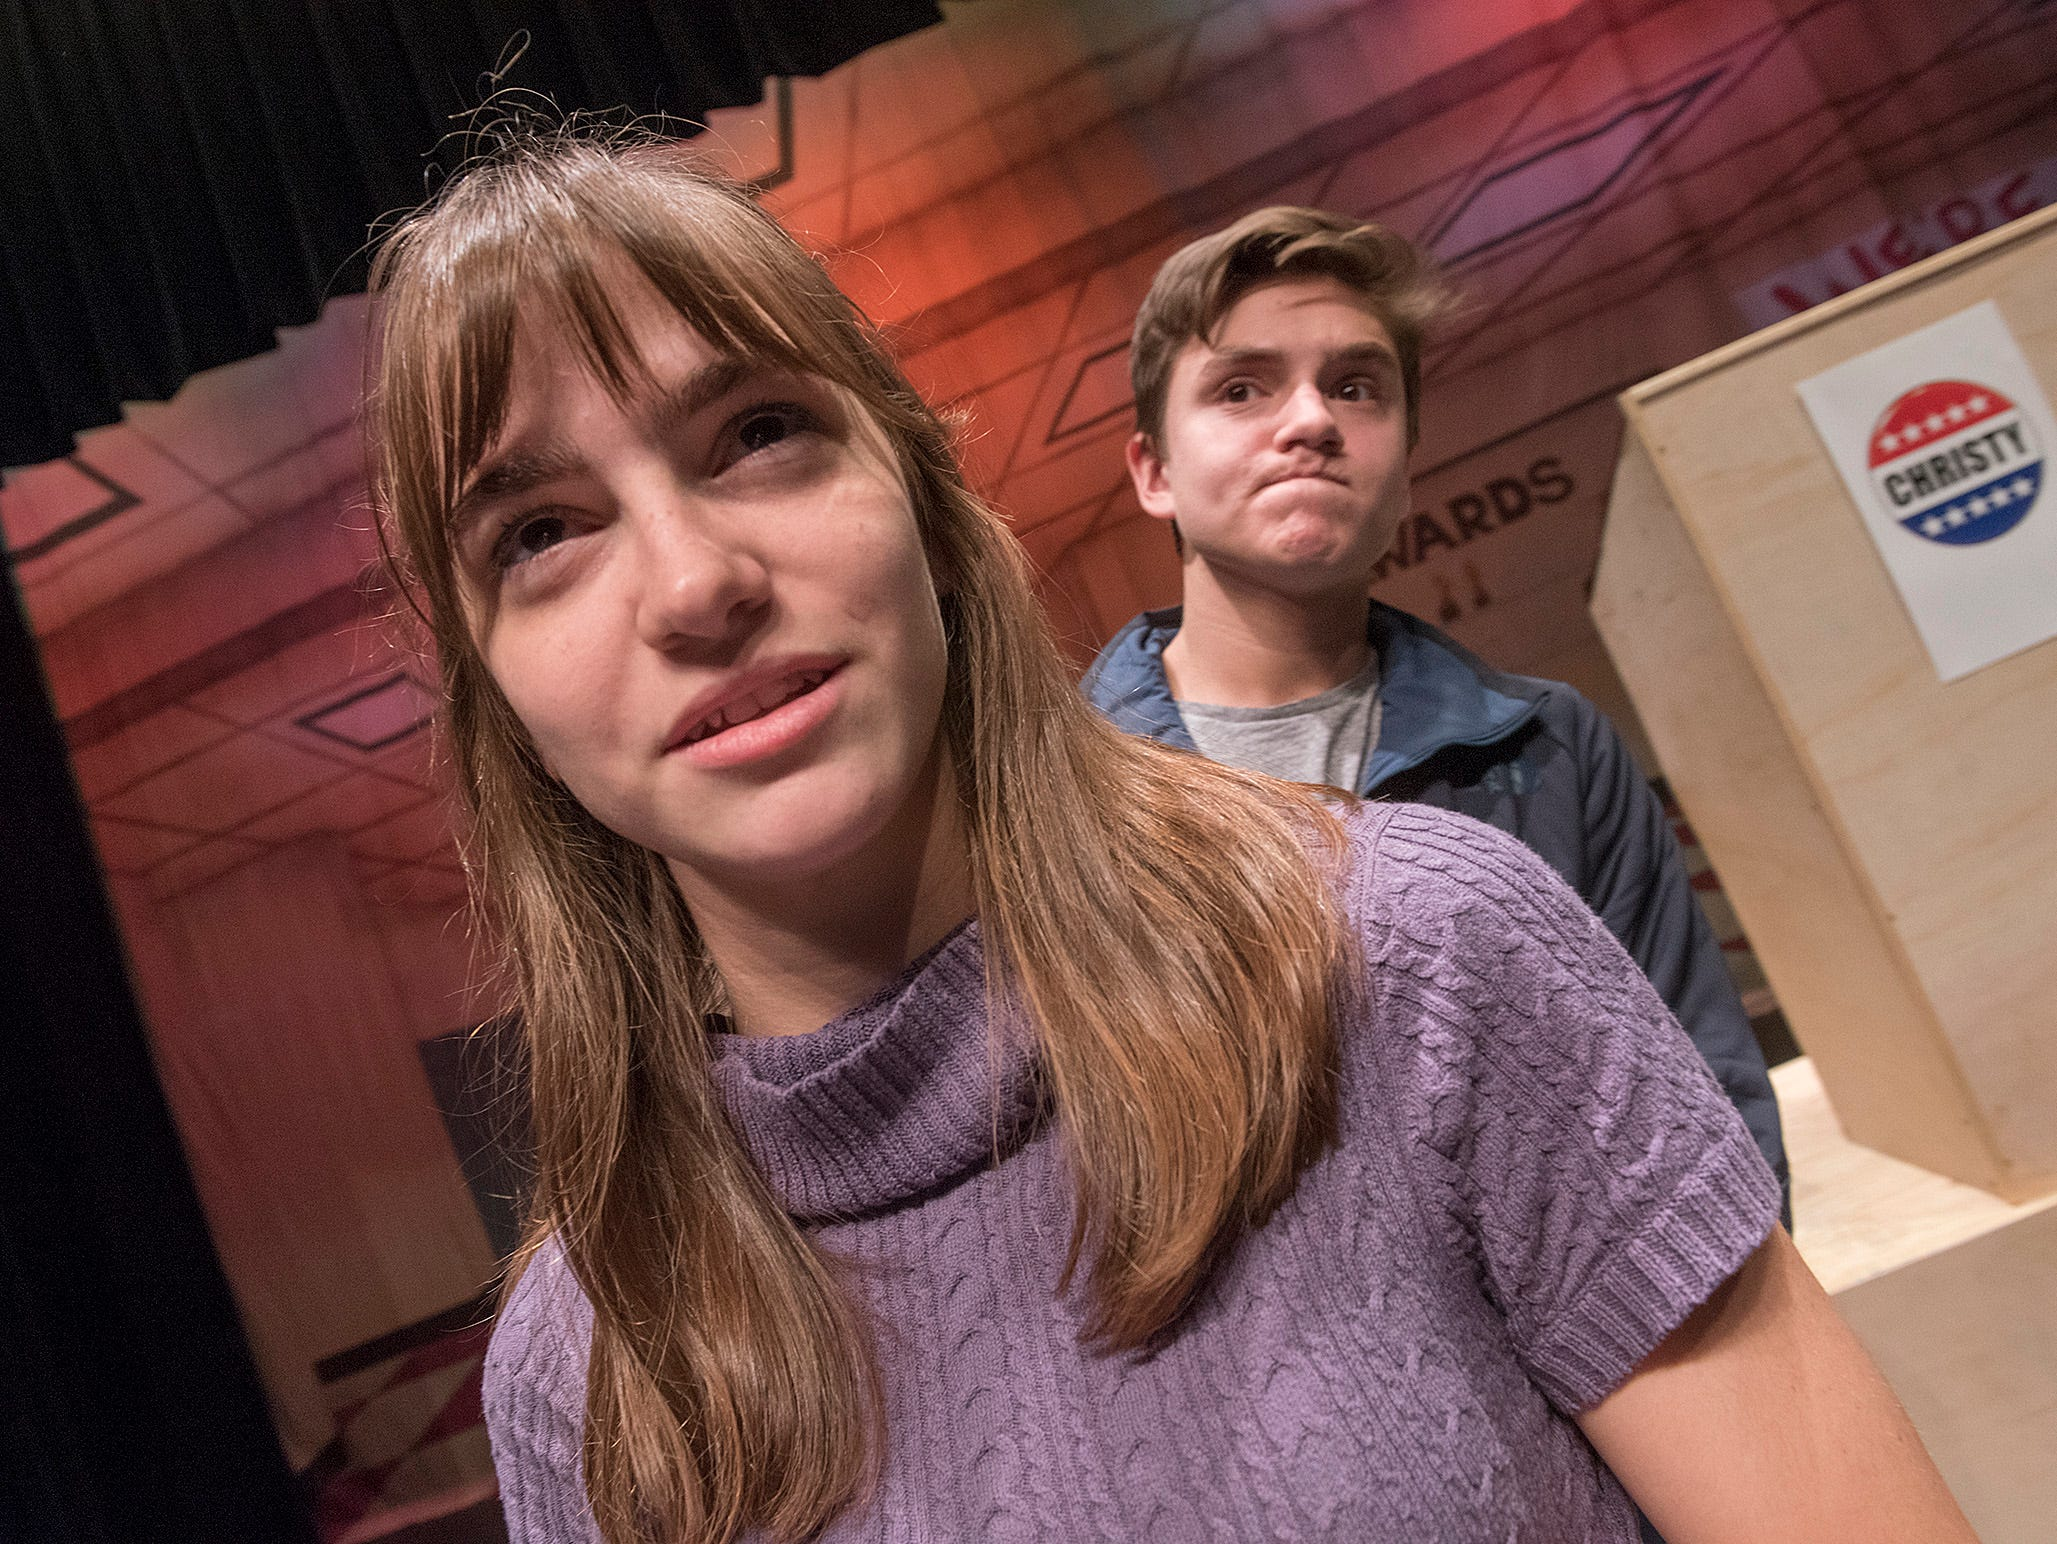 In and effort to seem cool and get votes, Mark (Ben Corsi) hires Sasha (Emma Miesner) a girlfriend, but her efforts to sell him to the student body only make the situation worse.